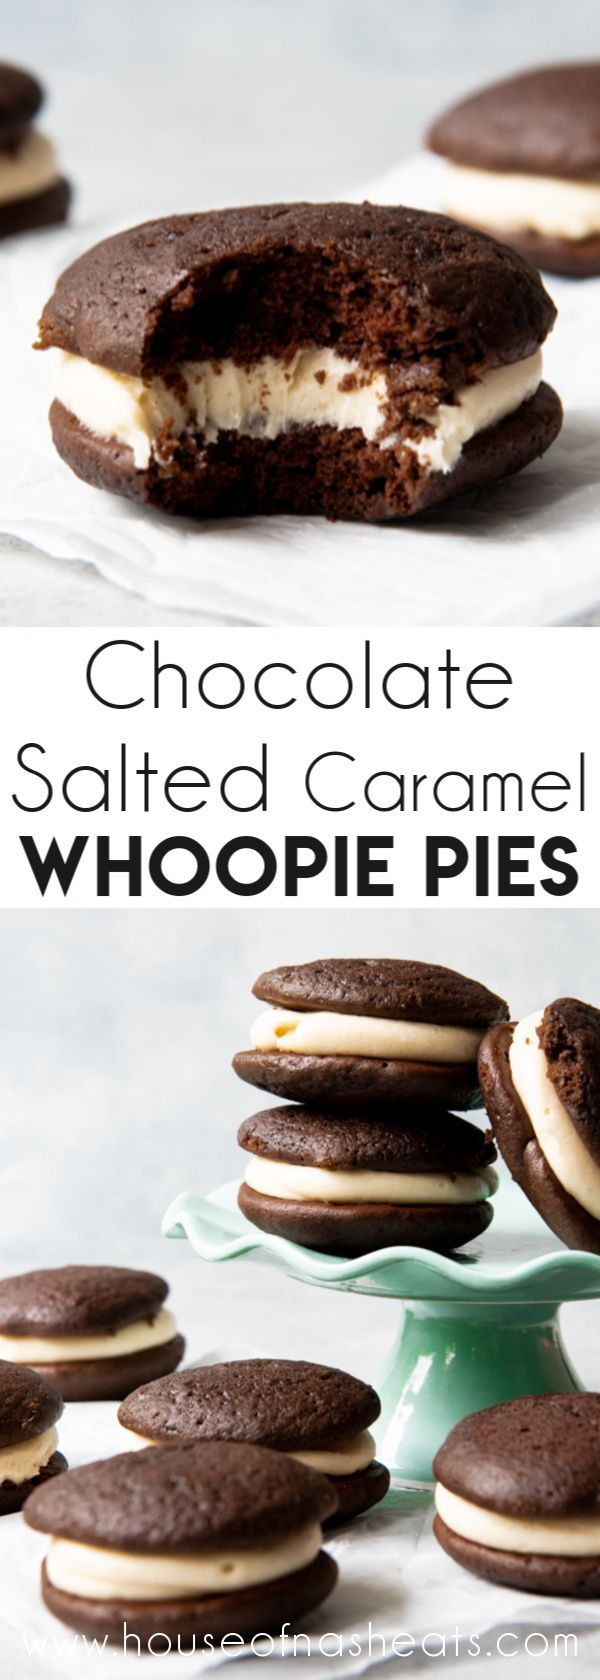 Chocolate Salted Caramel Whoopie Pies are decadent handheld treats that bridge t... ,  Chocolate Sa